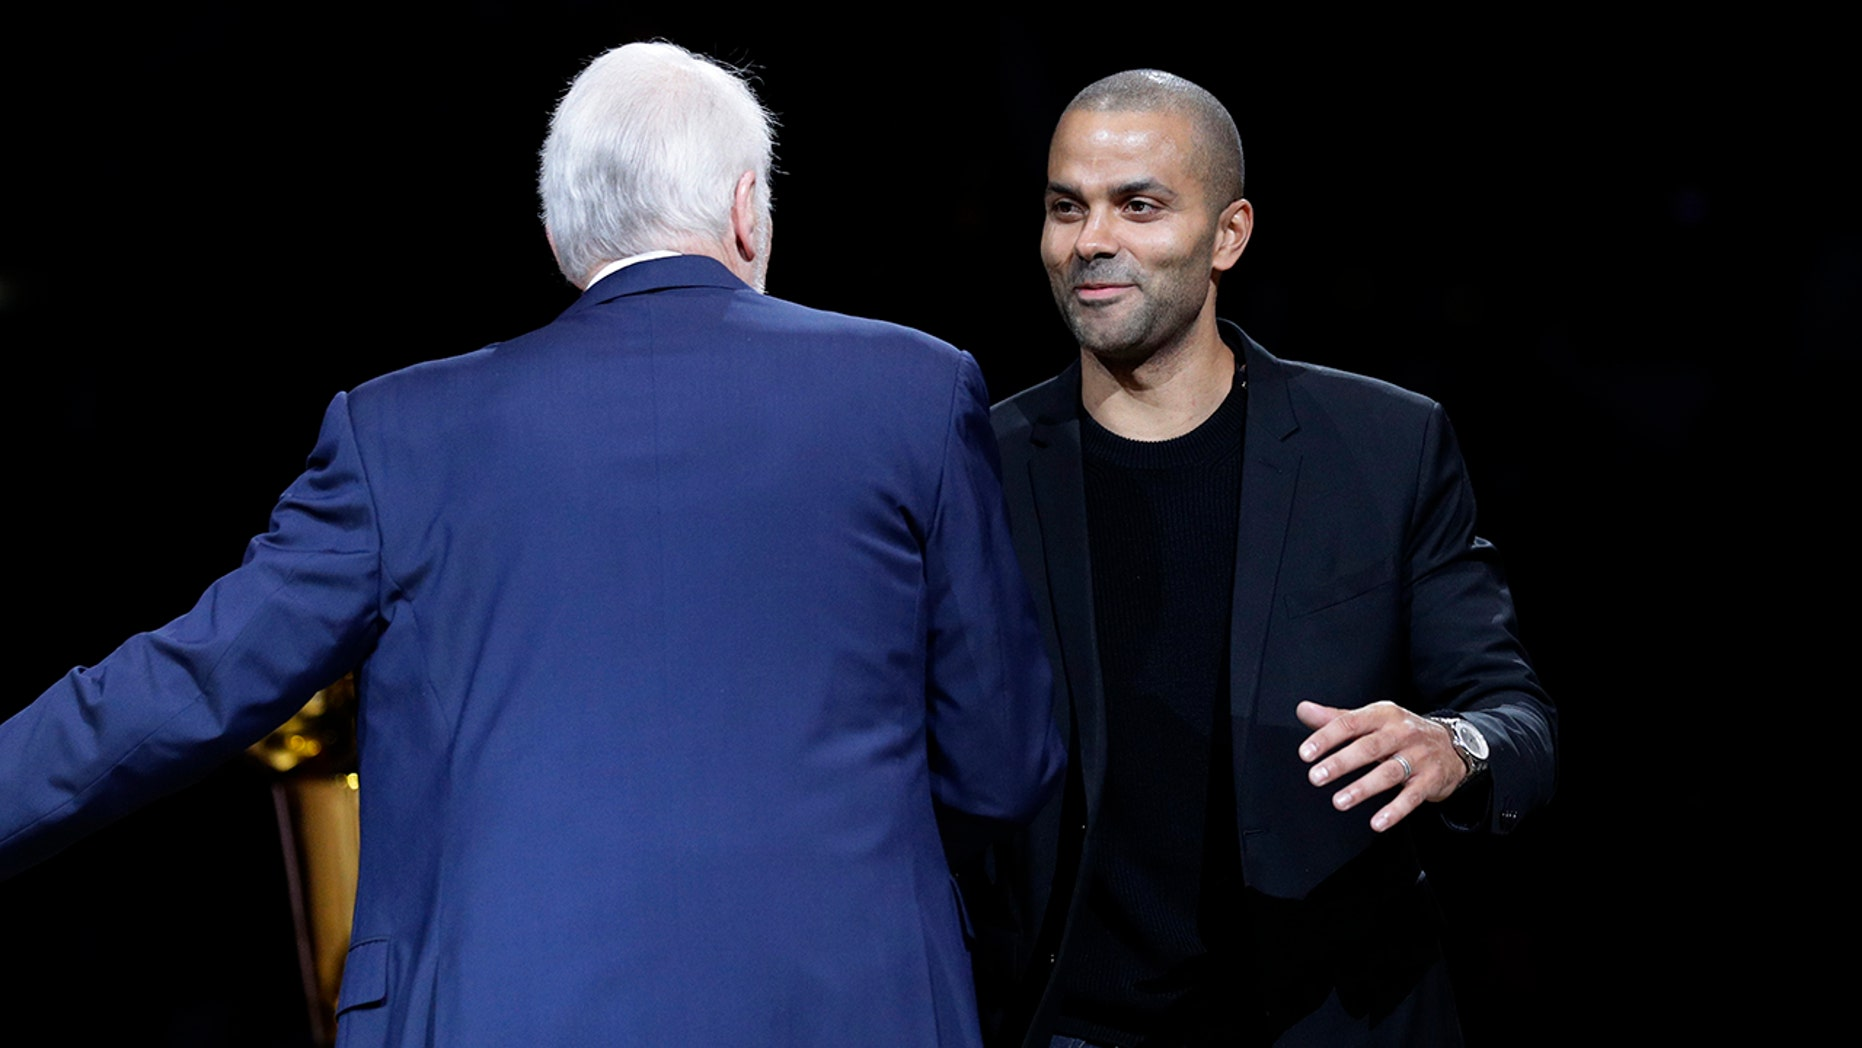 Former San Antonio Spurs ensure Tony Parker, right, reaches out to cuddle former manager Gregg Popovich during Parker's retirement rite after a team's NBA basketball diversion opposite a Memphis Grizzlies in San Antonio, Monday, Nov. 11, 2019. (AP Photo/Eric Gay)